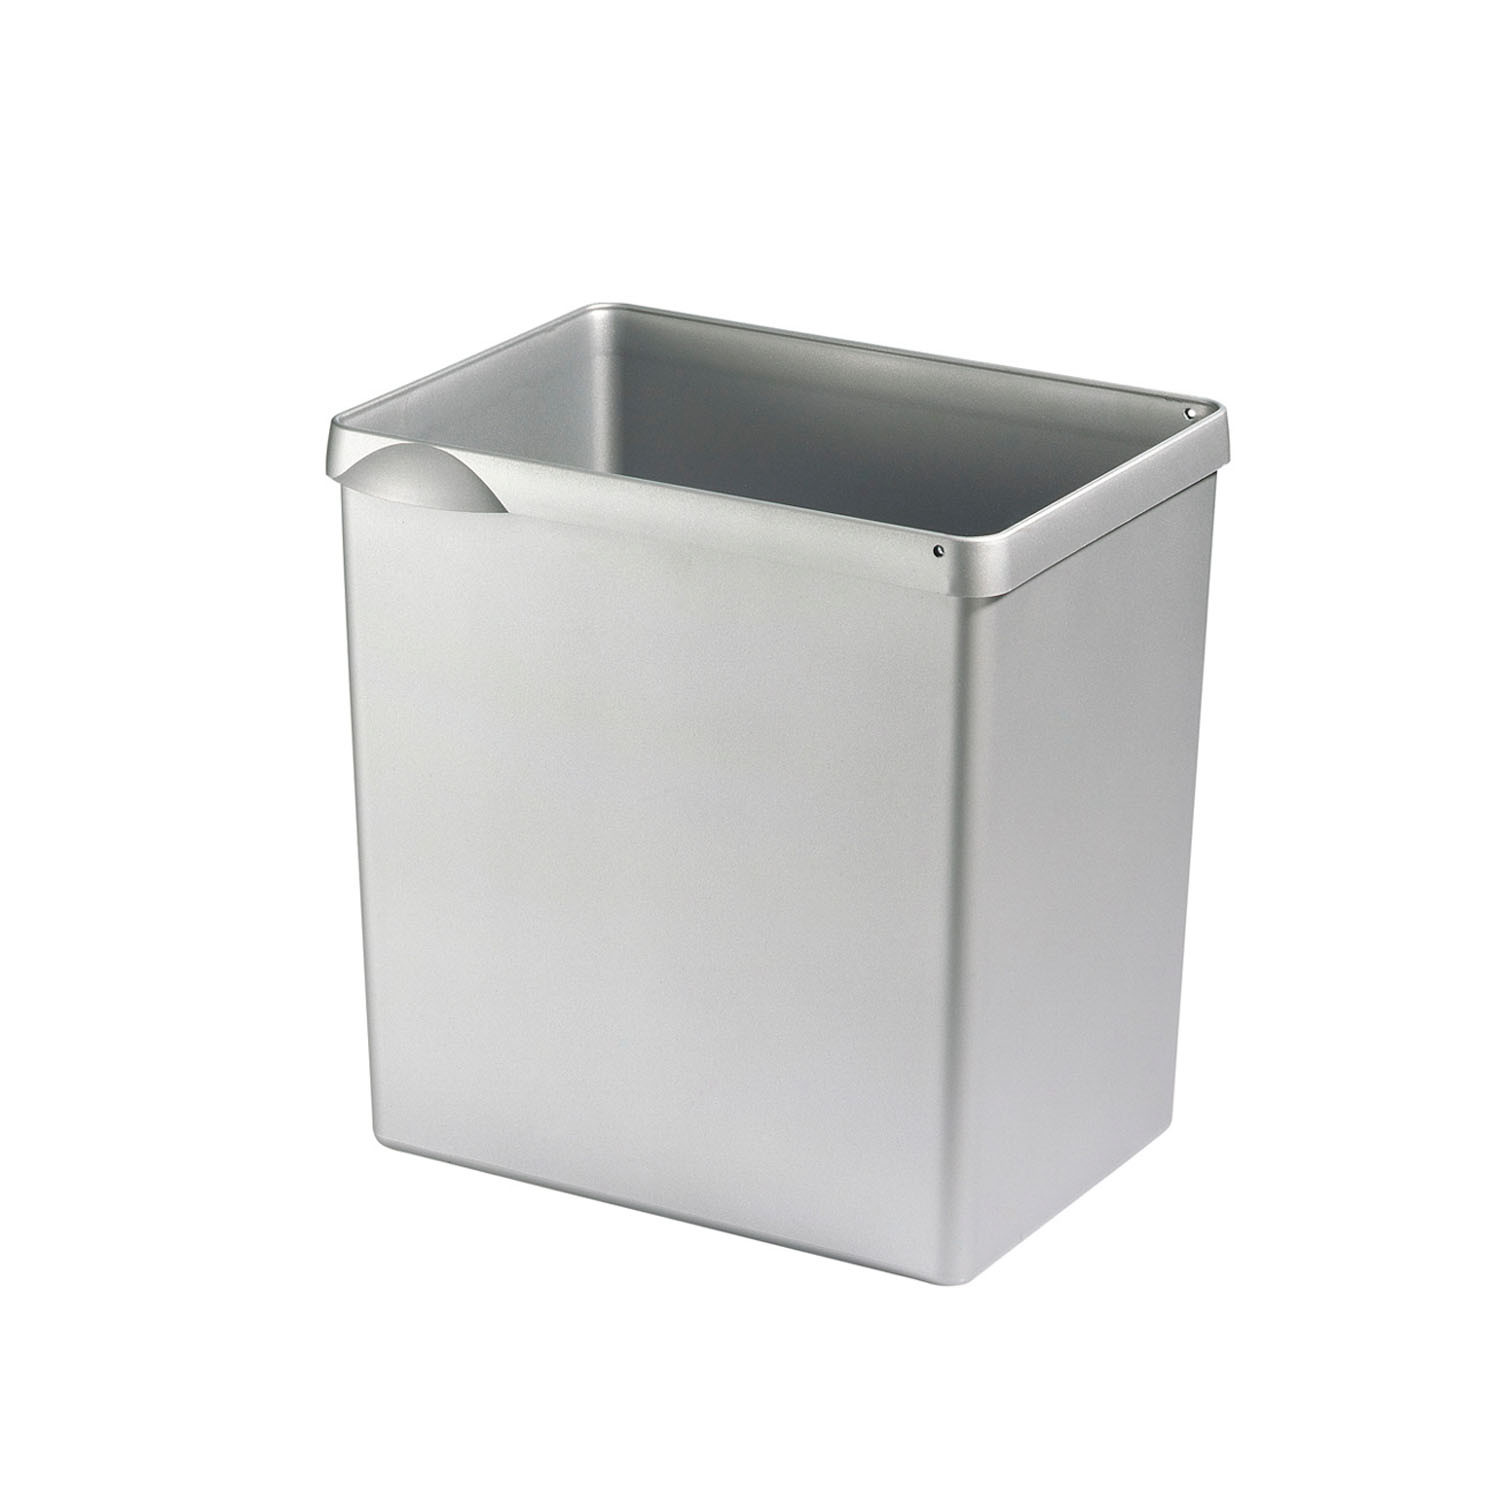 Tribu Recycling Bins